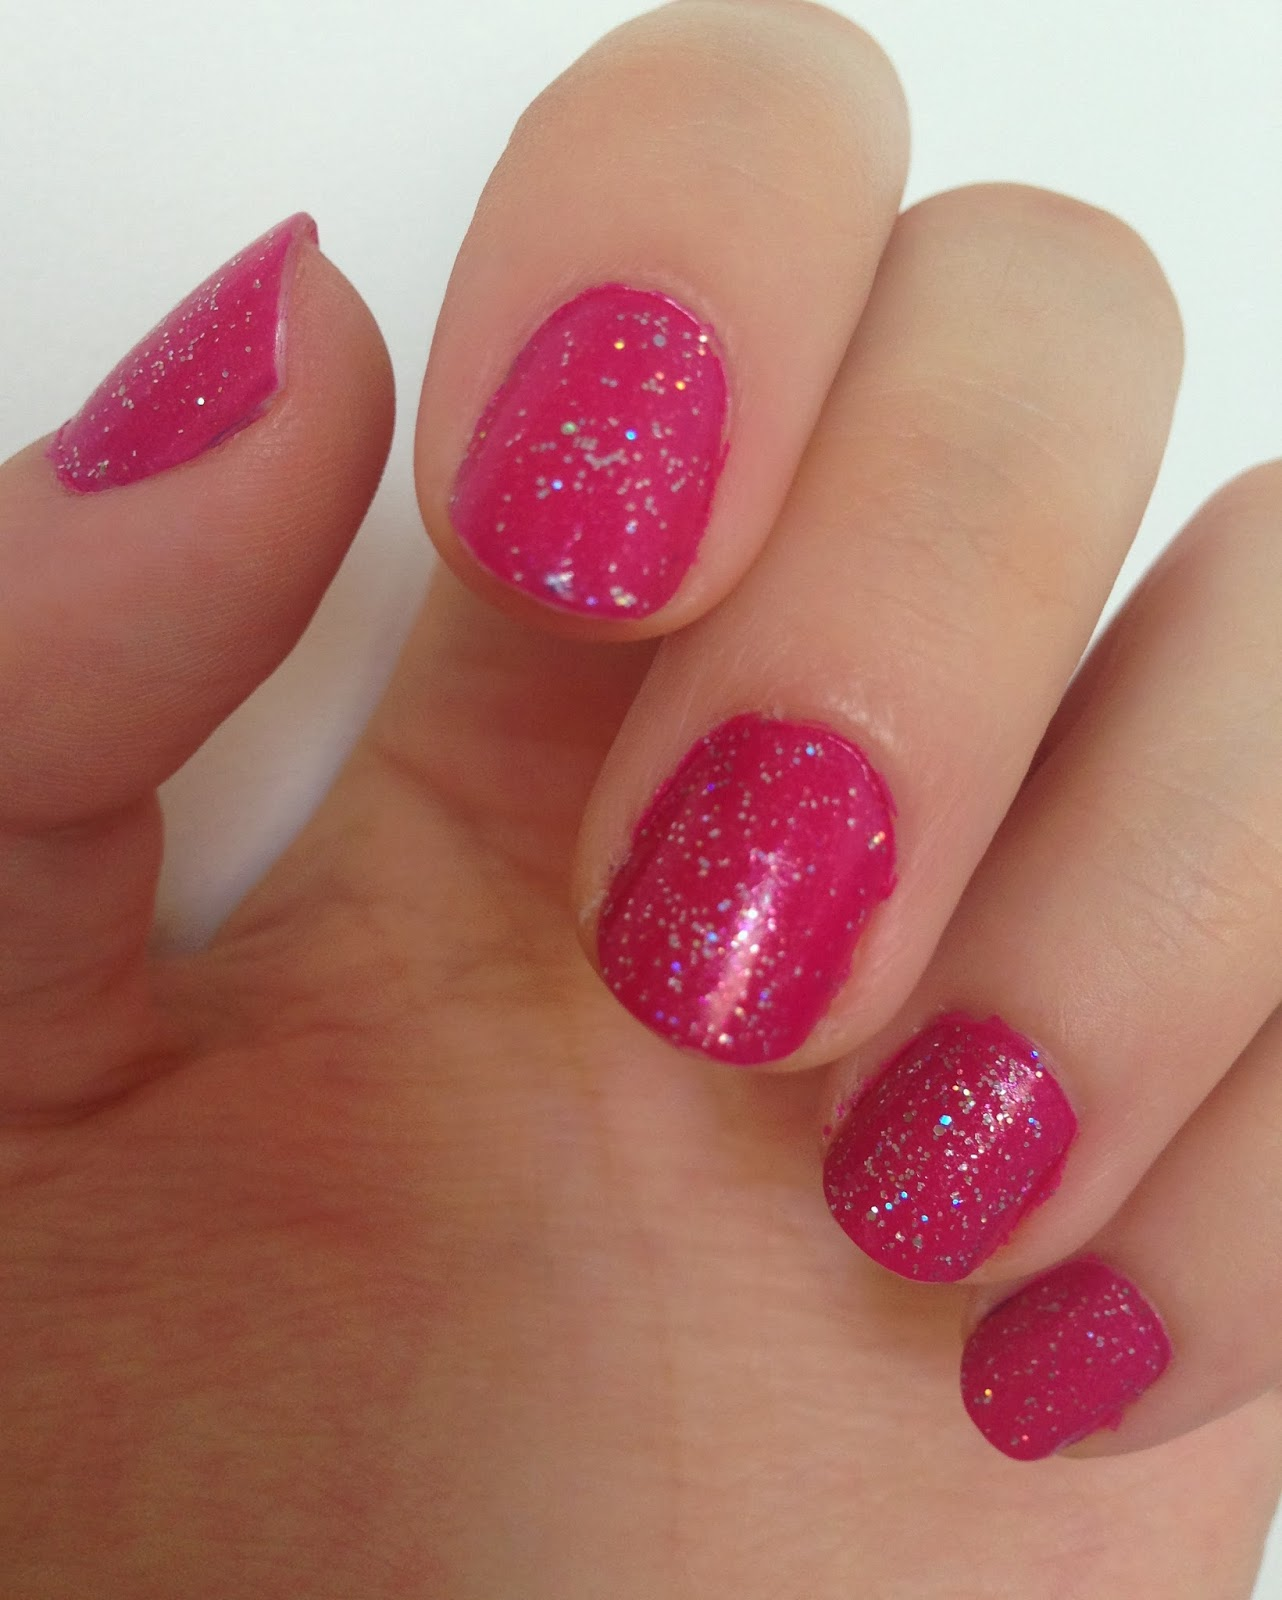 SPARKLY PINK NAILS